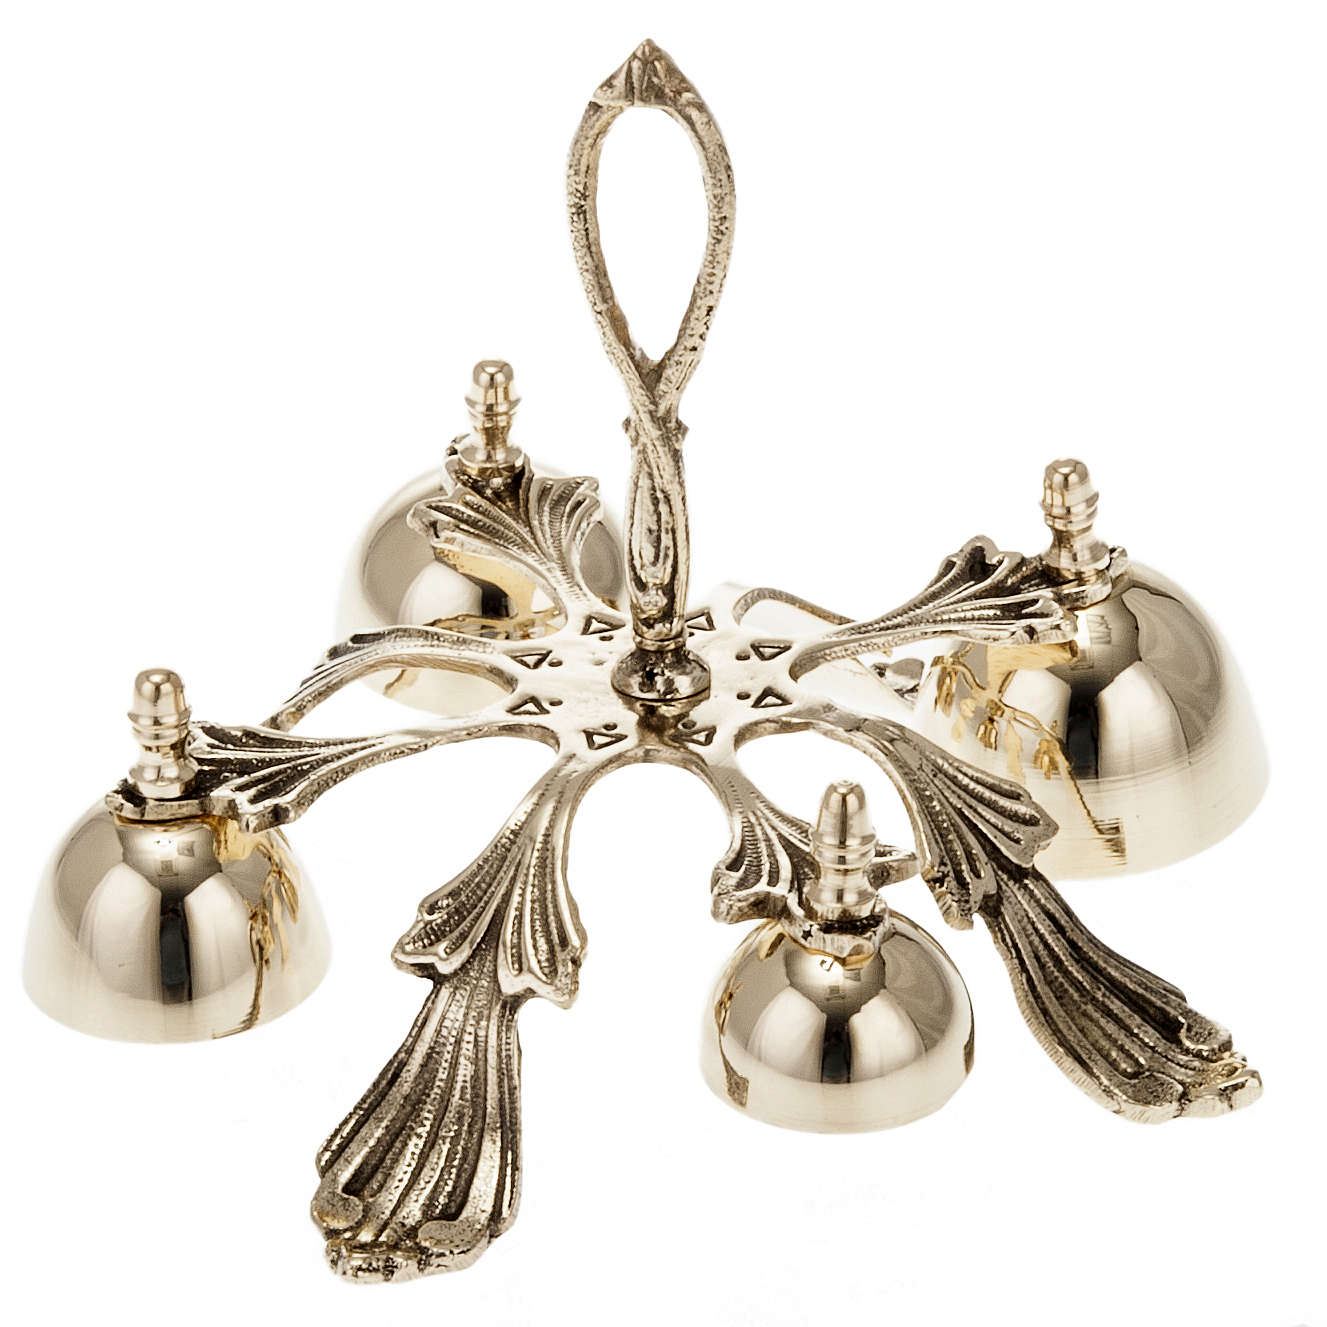 Church hand bell four sounds golden-plated decorated 3